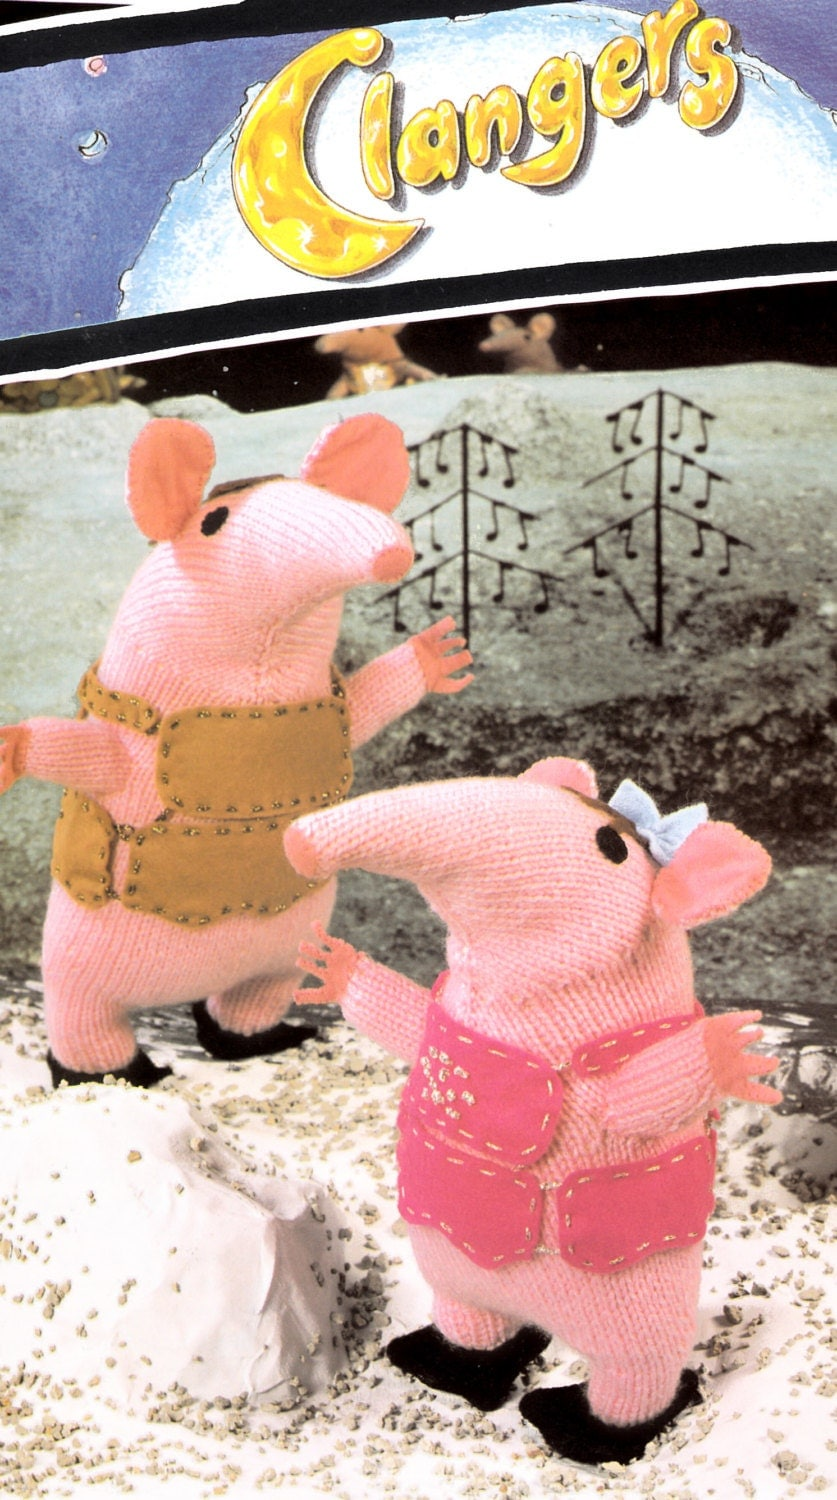 Knitting Pattern For Clangers : vintage knitting pattern PDF file for The Clangers retro tv